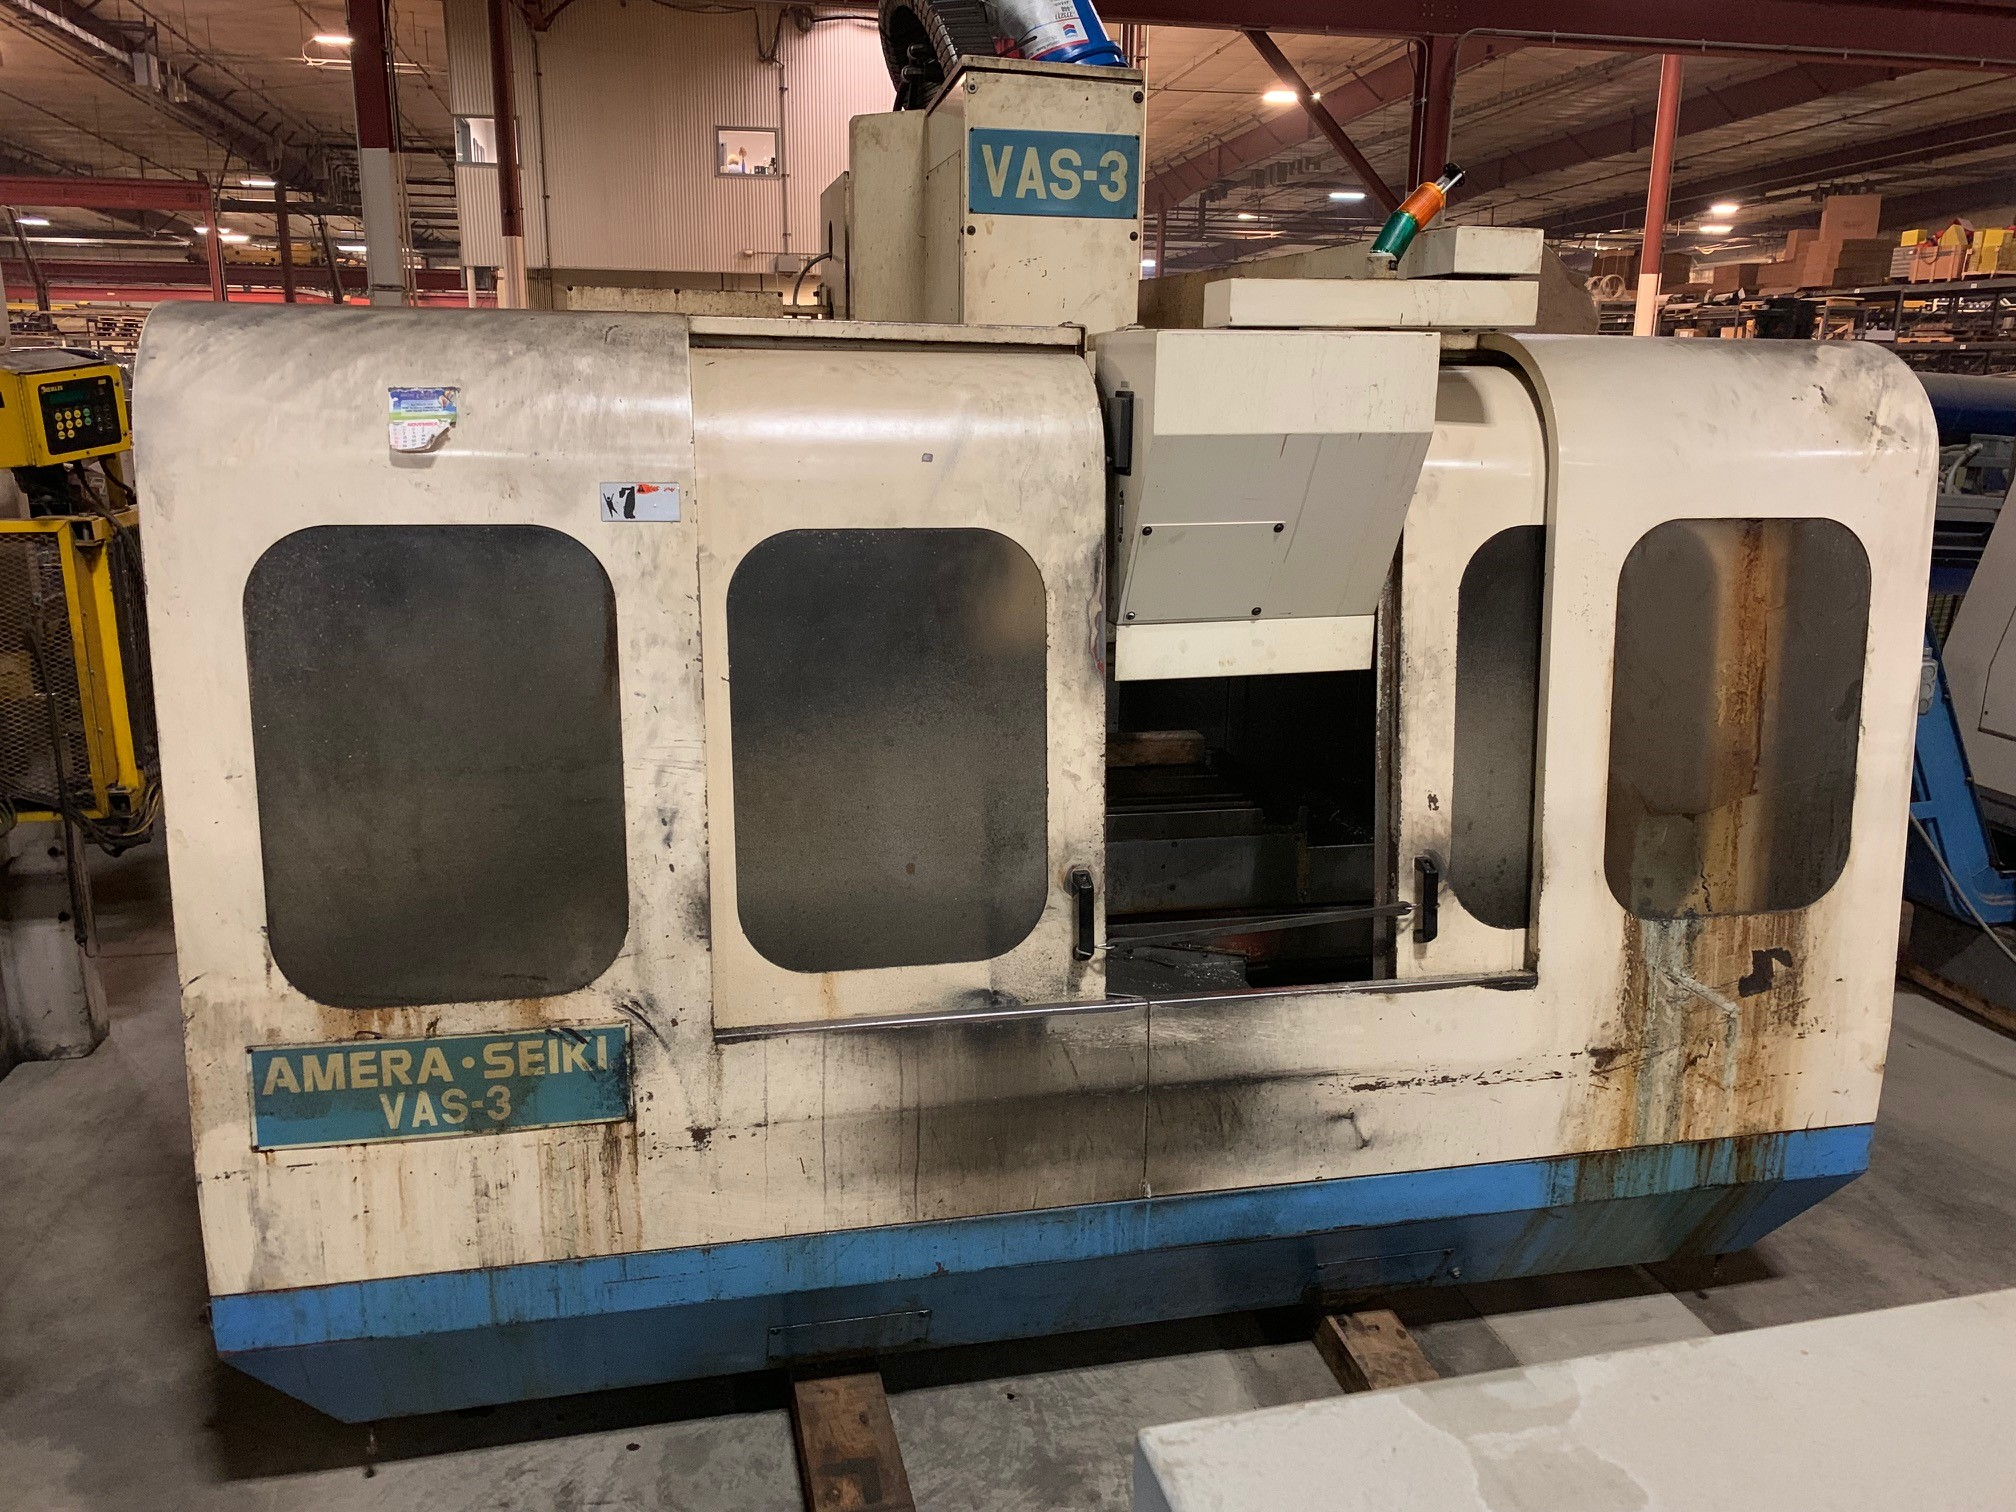 (1) PREOWNED AMERA SEIKI VERTICAL MACHINING CENTER, MODEL <br>VAS-3, S/N 9800061